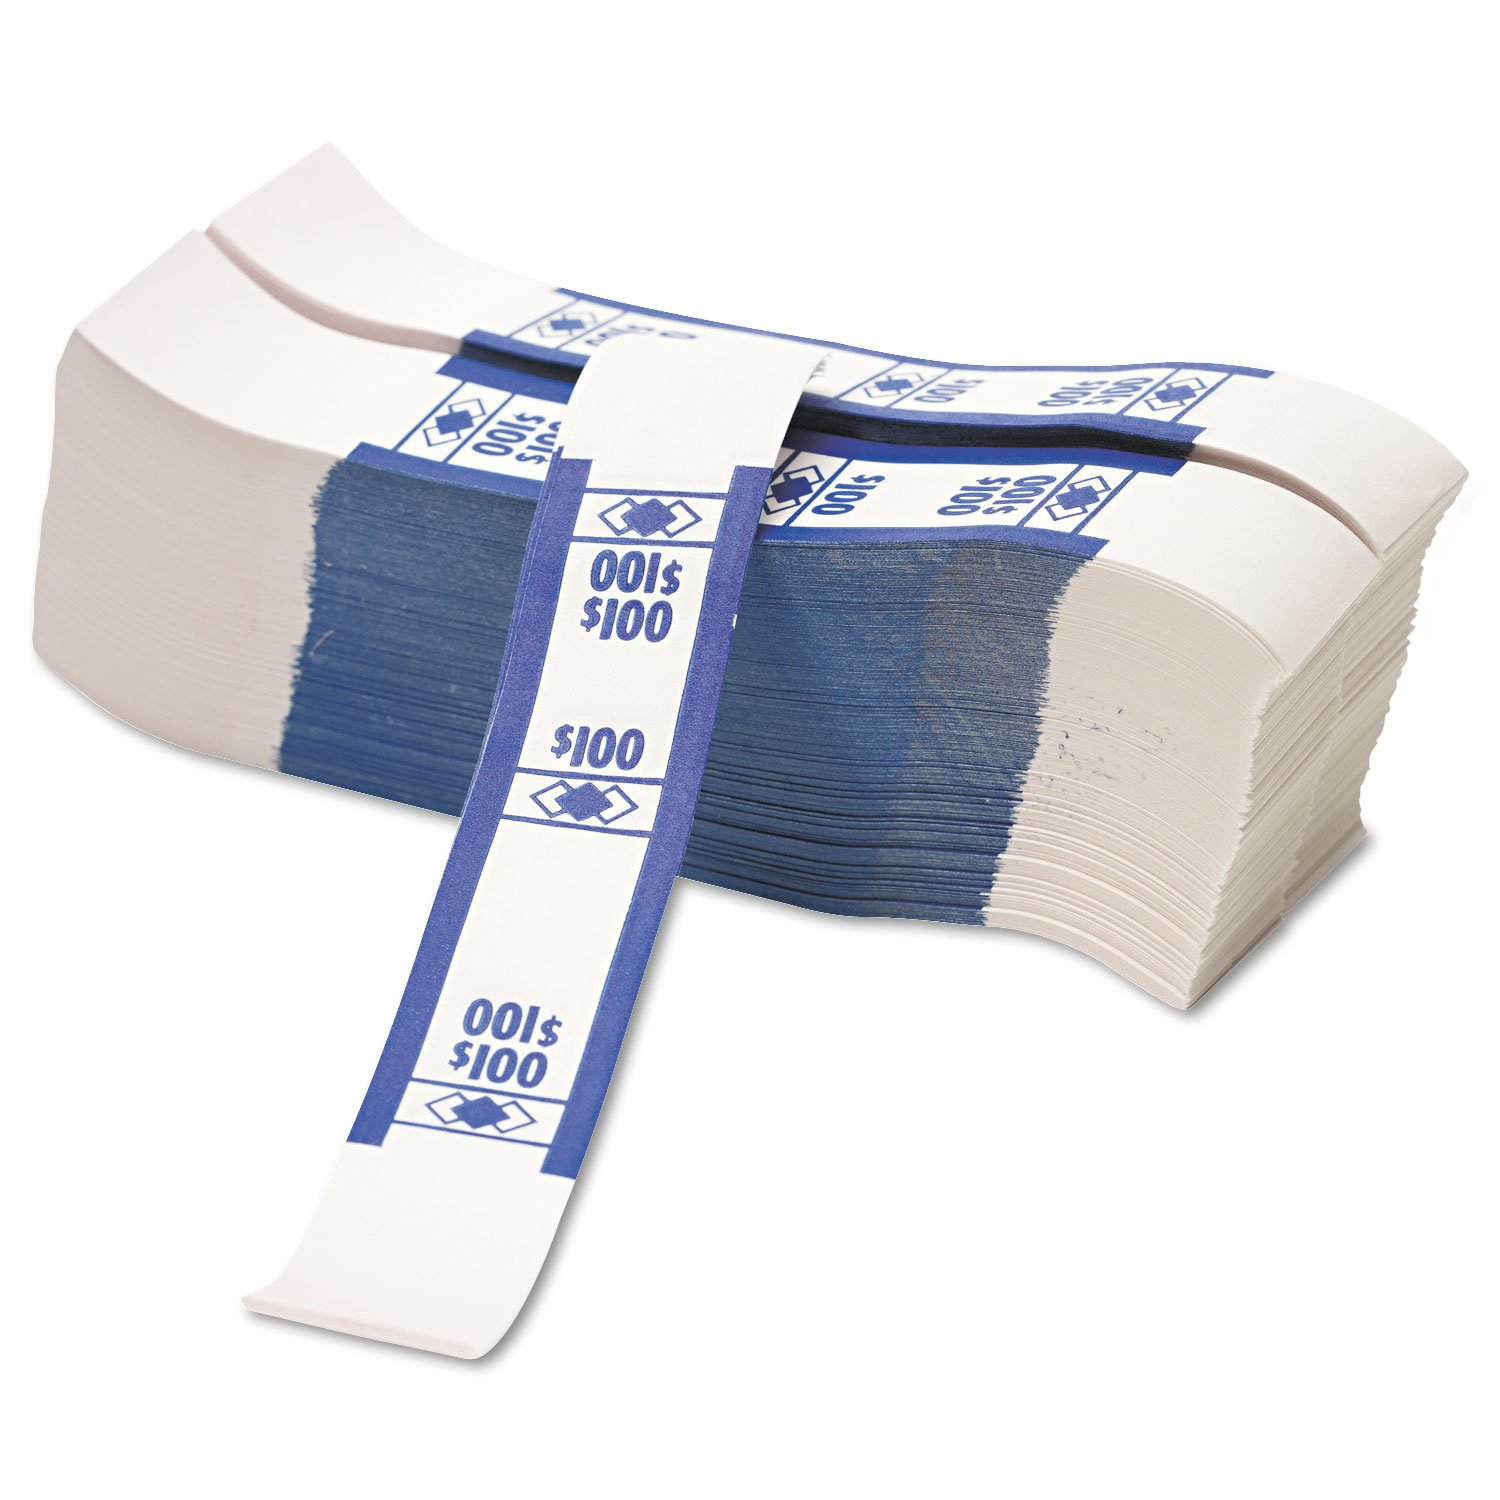 Coin-Tainer Currency Straps Blue $100 in Dollar Bills 1000 Bands//Pack 400100